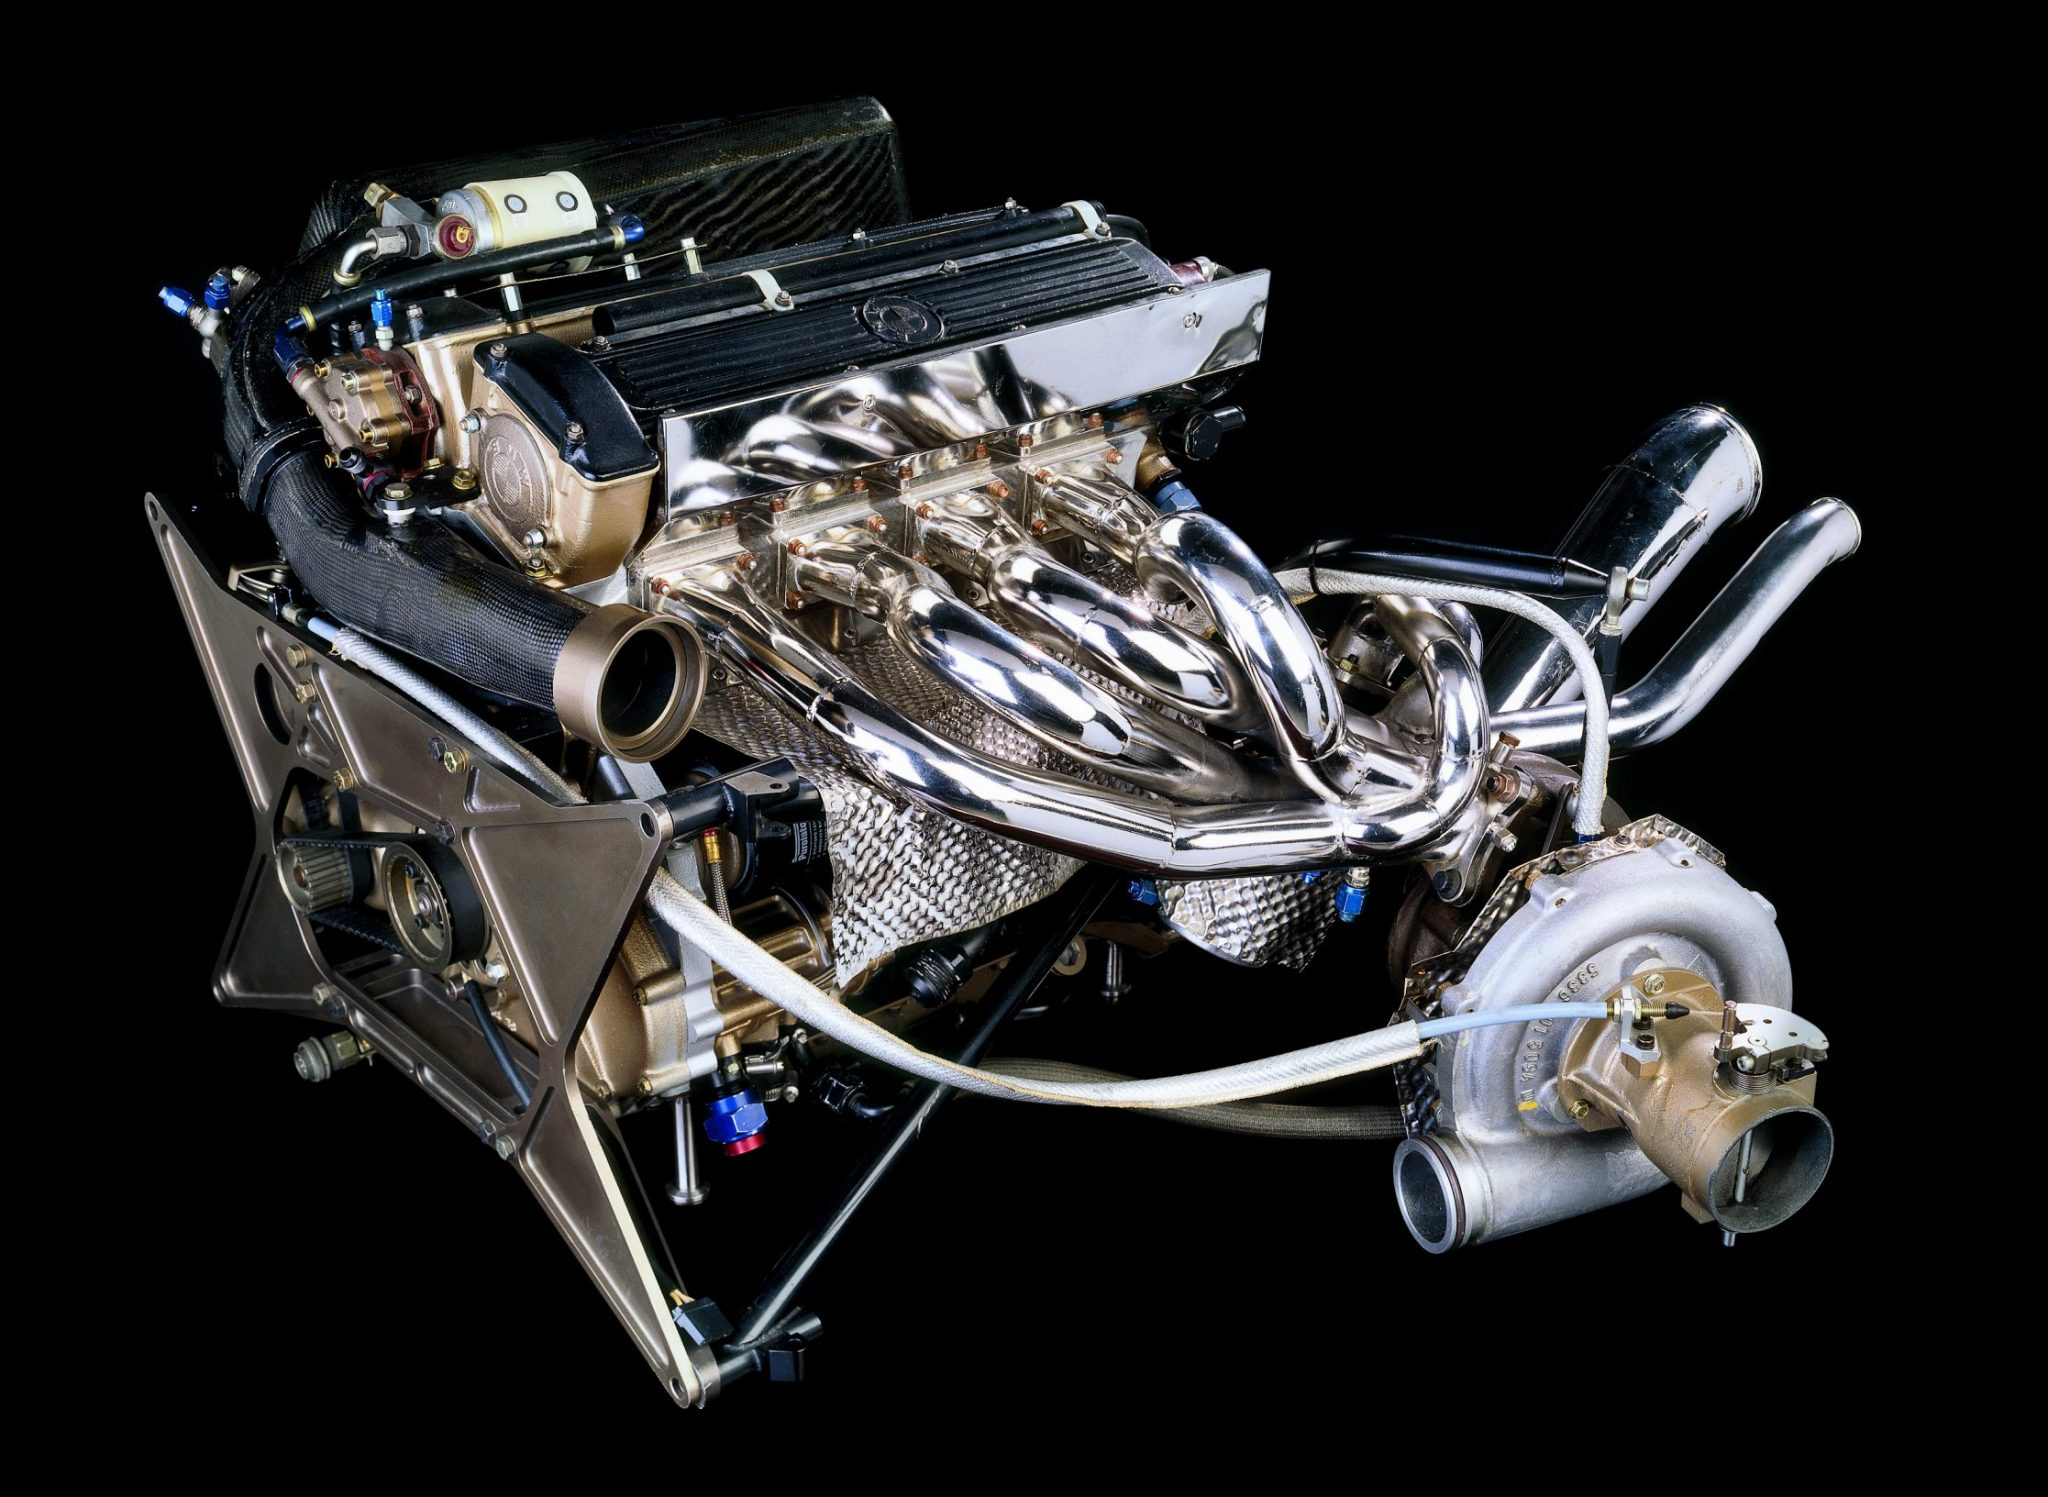 Engine room: The history of the BMW M10 four-cylinder